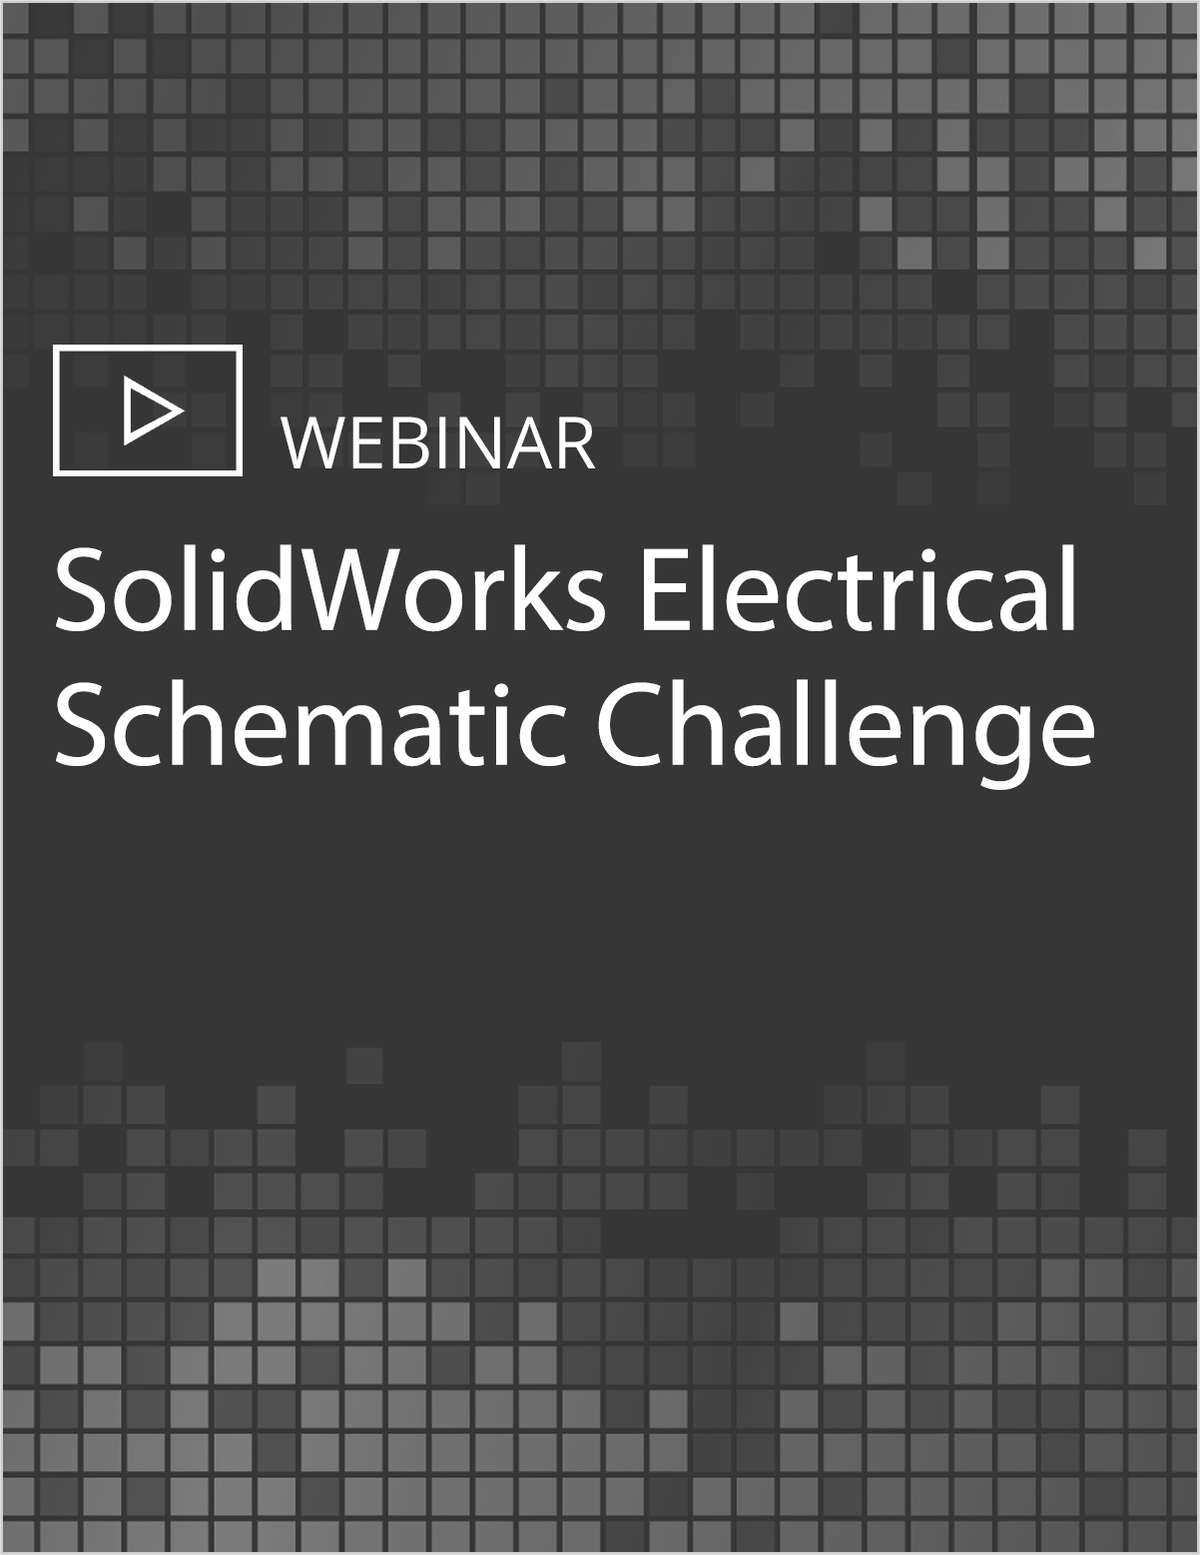 SolidWorks Electrical Schematic Challenge